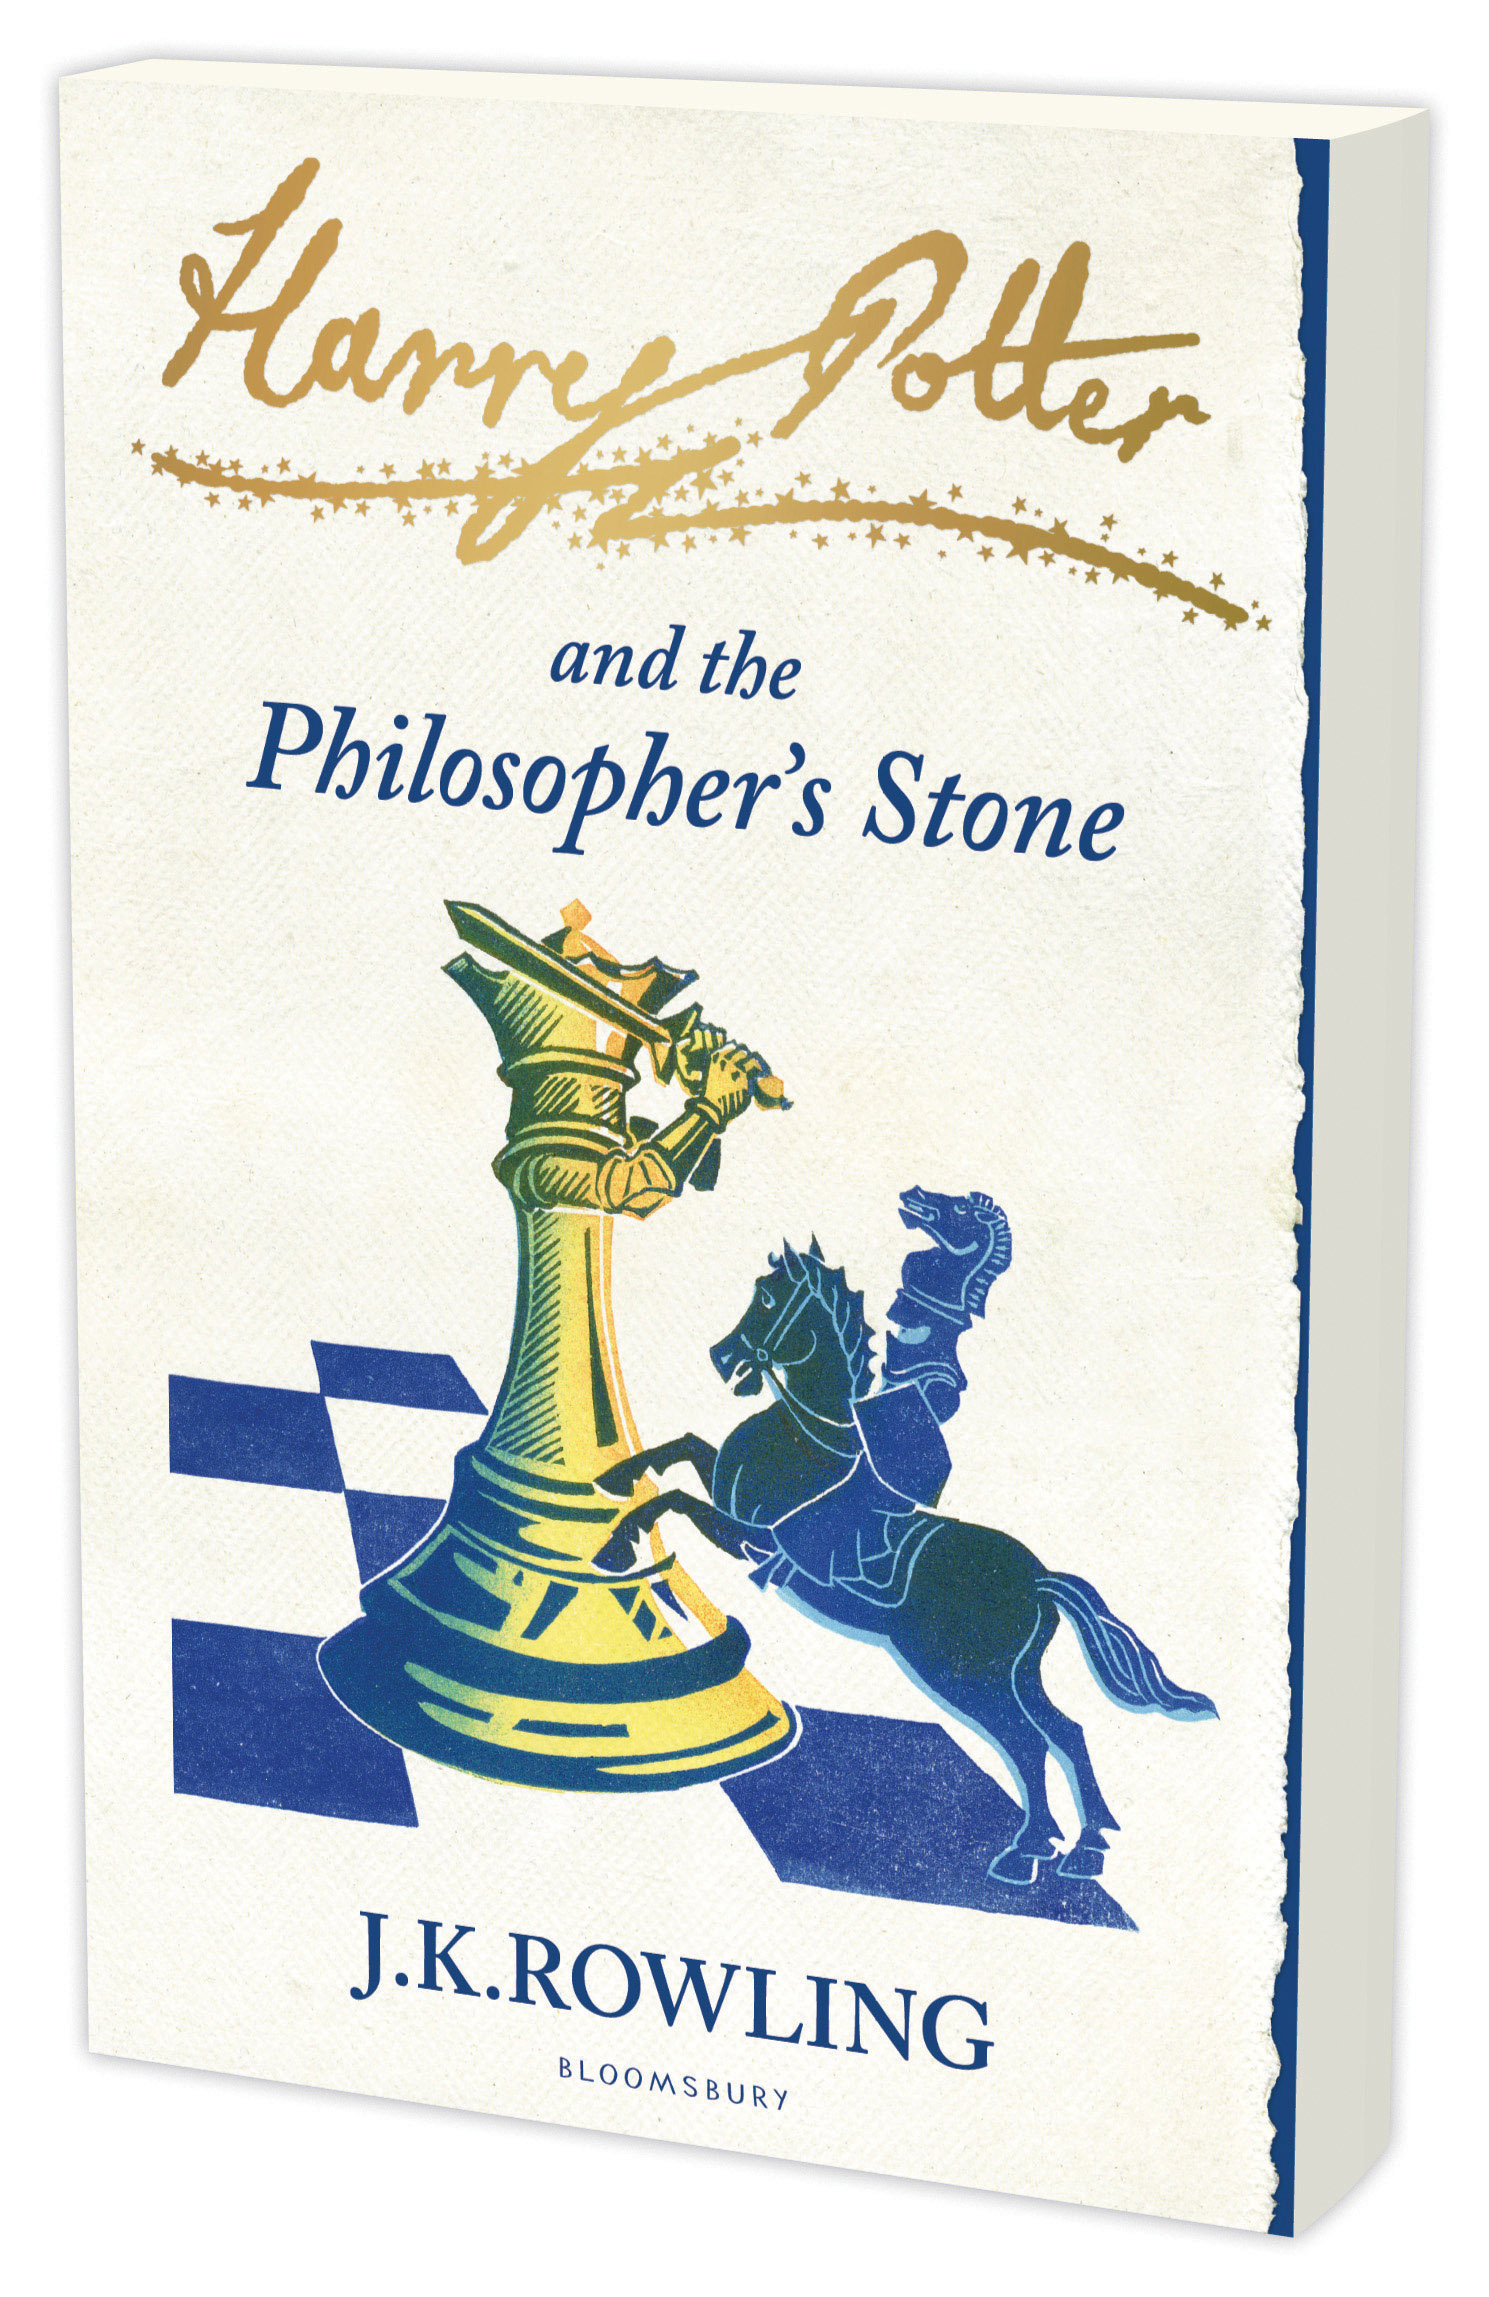 Cover Art for Harry Potter and the Philosopher's Stone signature edition, ISBN: 9781408810545